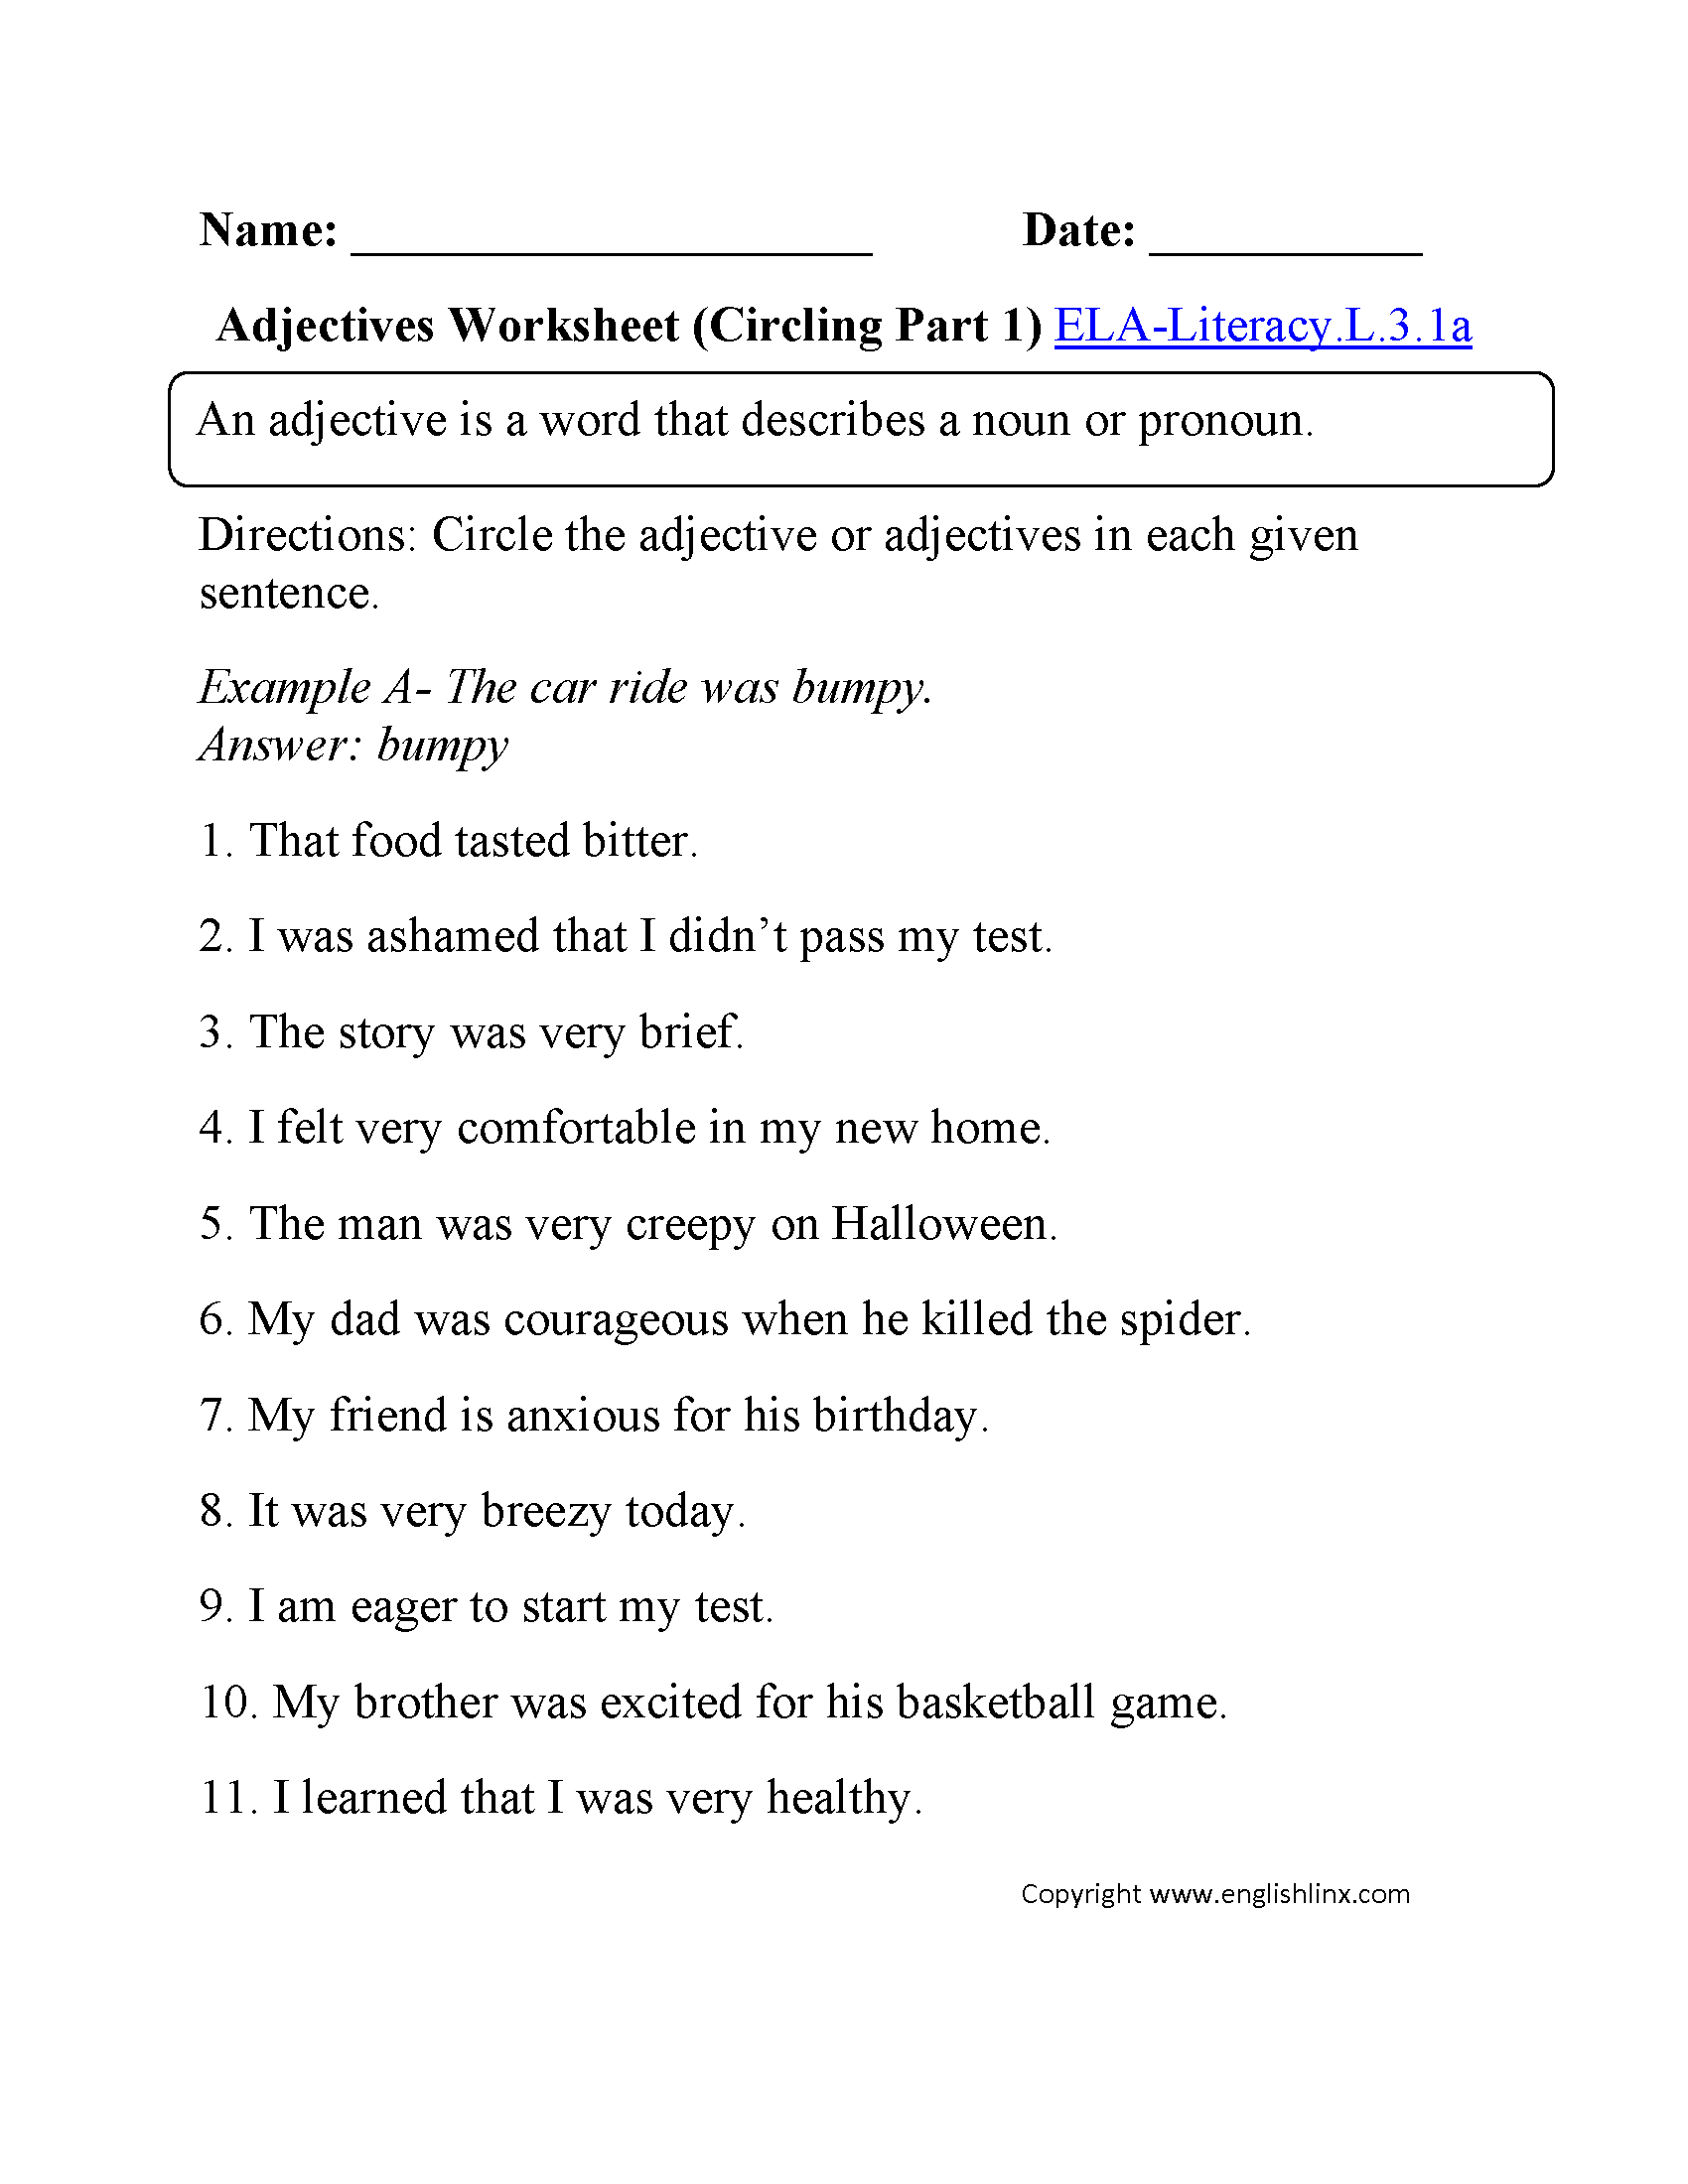 Worksheet Adjective Worksheet For Grade 1 1000 images about l 3 1 on pinterest common cores worksheets and language